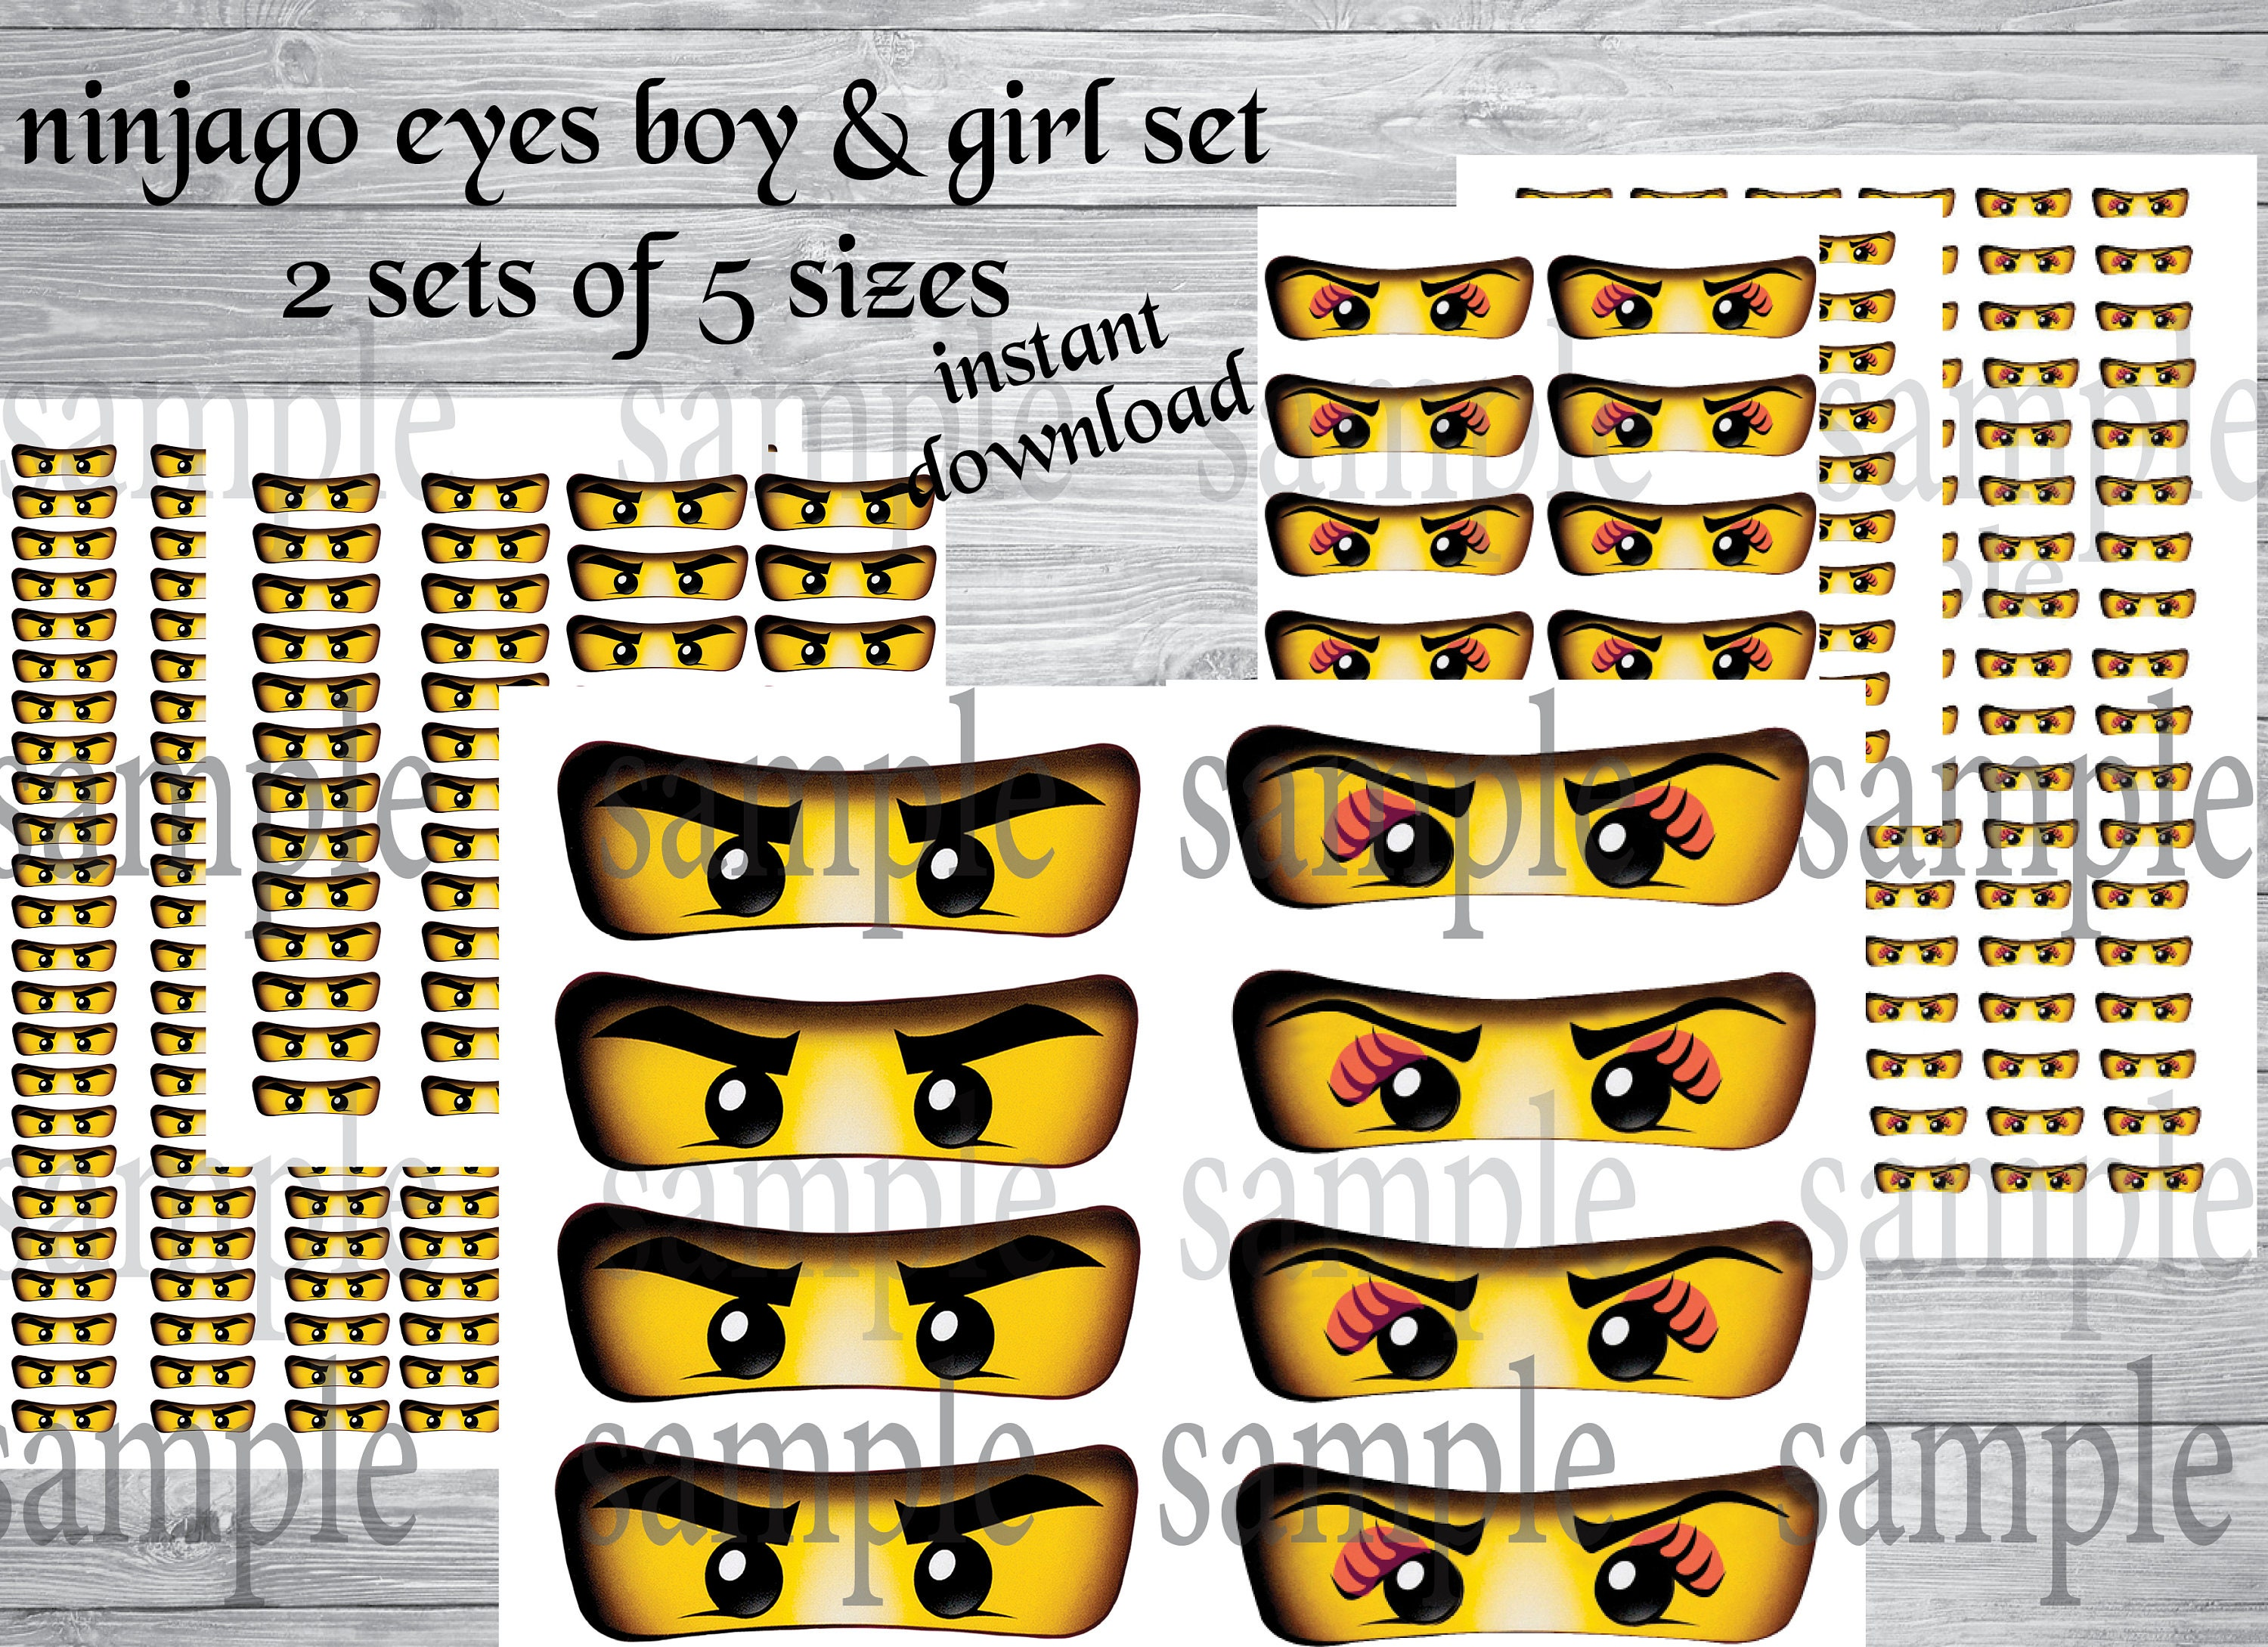 graphic relating to Printable Ninjago Eyes named Instantaneous DL- Ninjago eyes -for Balloon, Stickers, Lollipop, Want luggage, Cups, Ninjago video clip, - Ninjago birthday social gathering (2 SETs of 5 measurements)